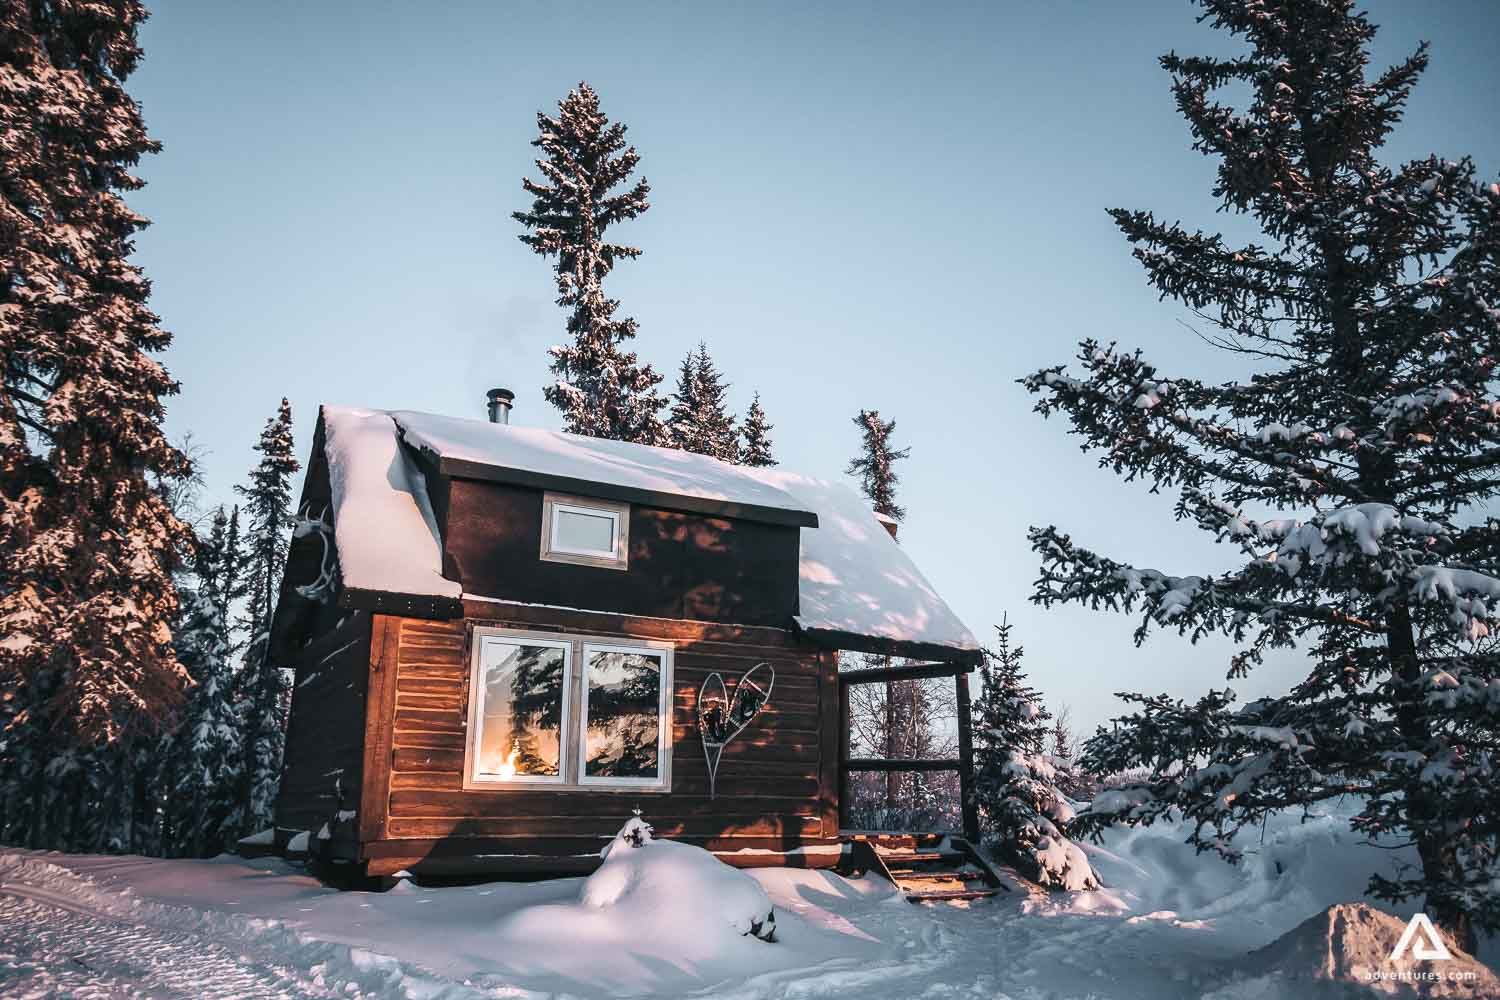 Beautiful lodge in the forest